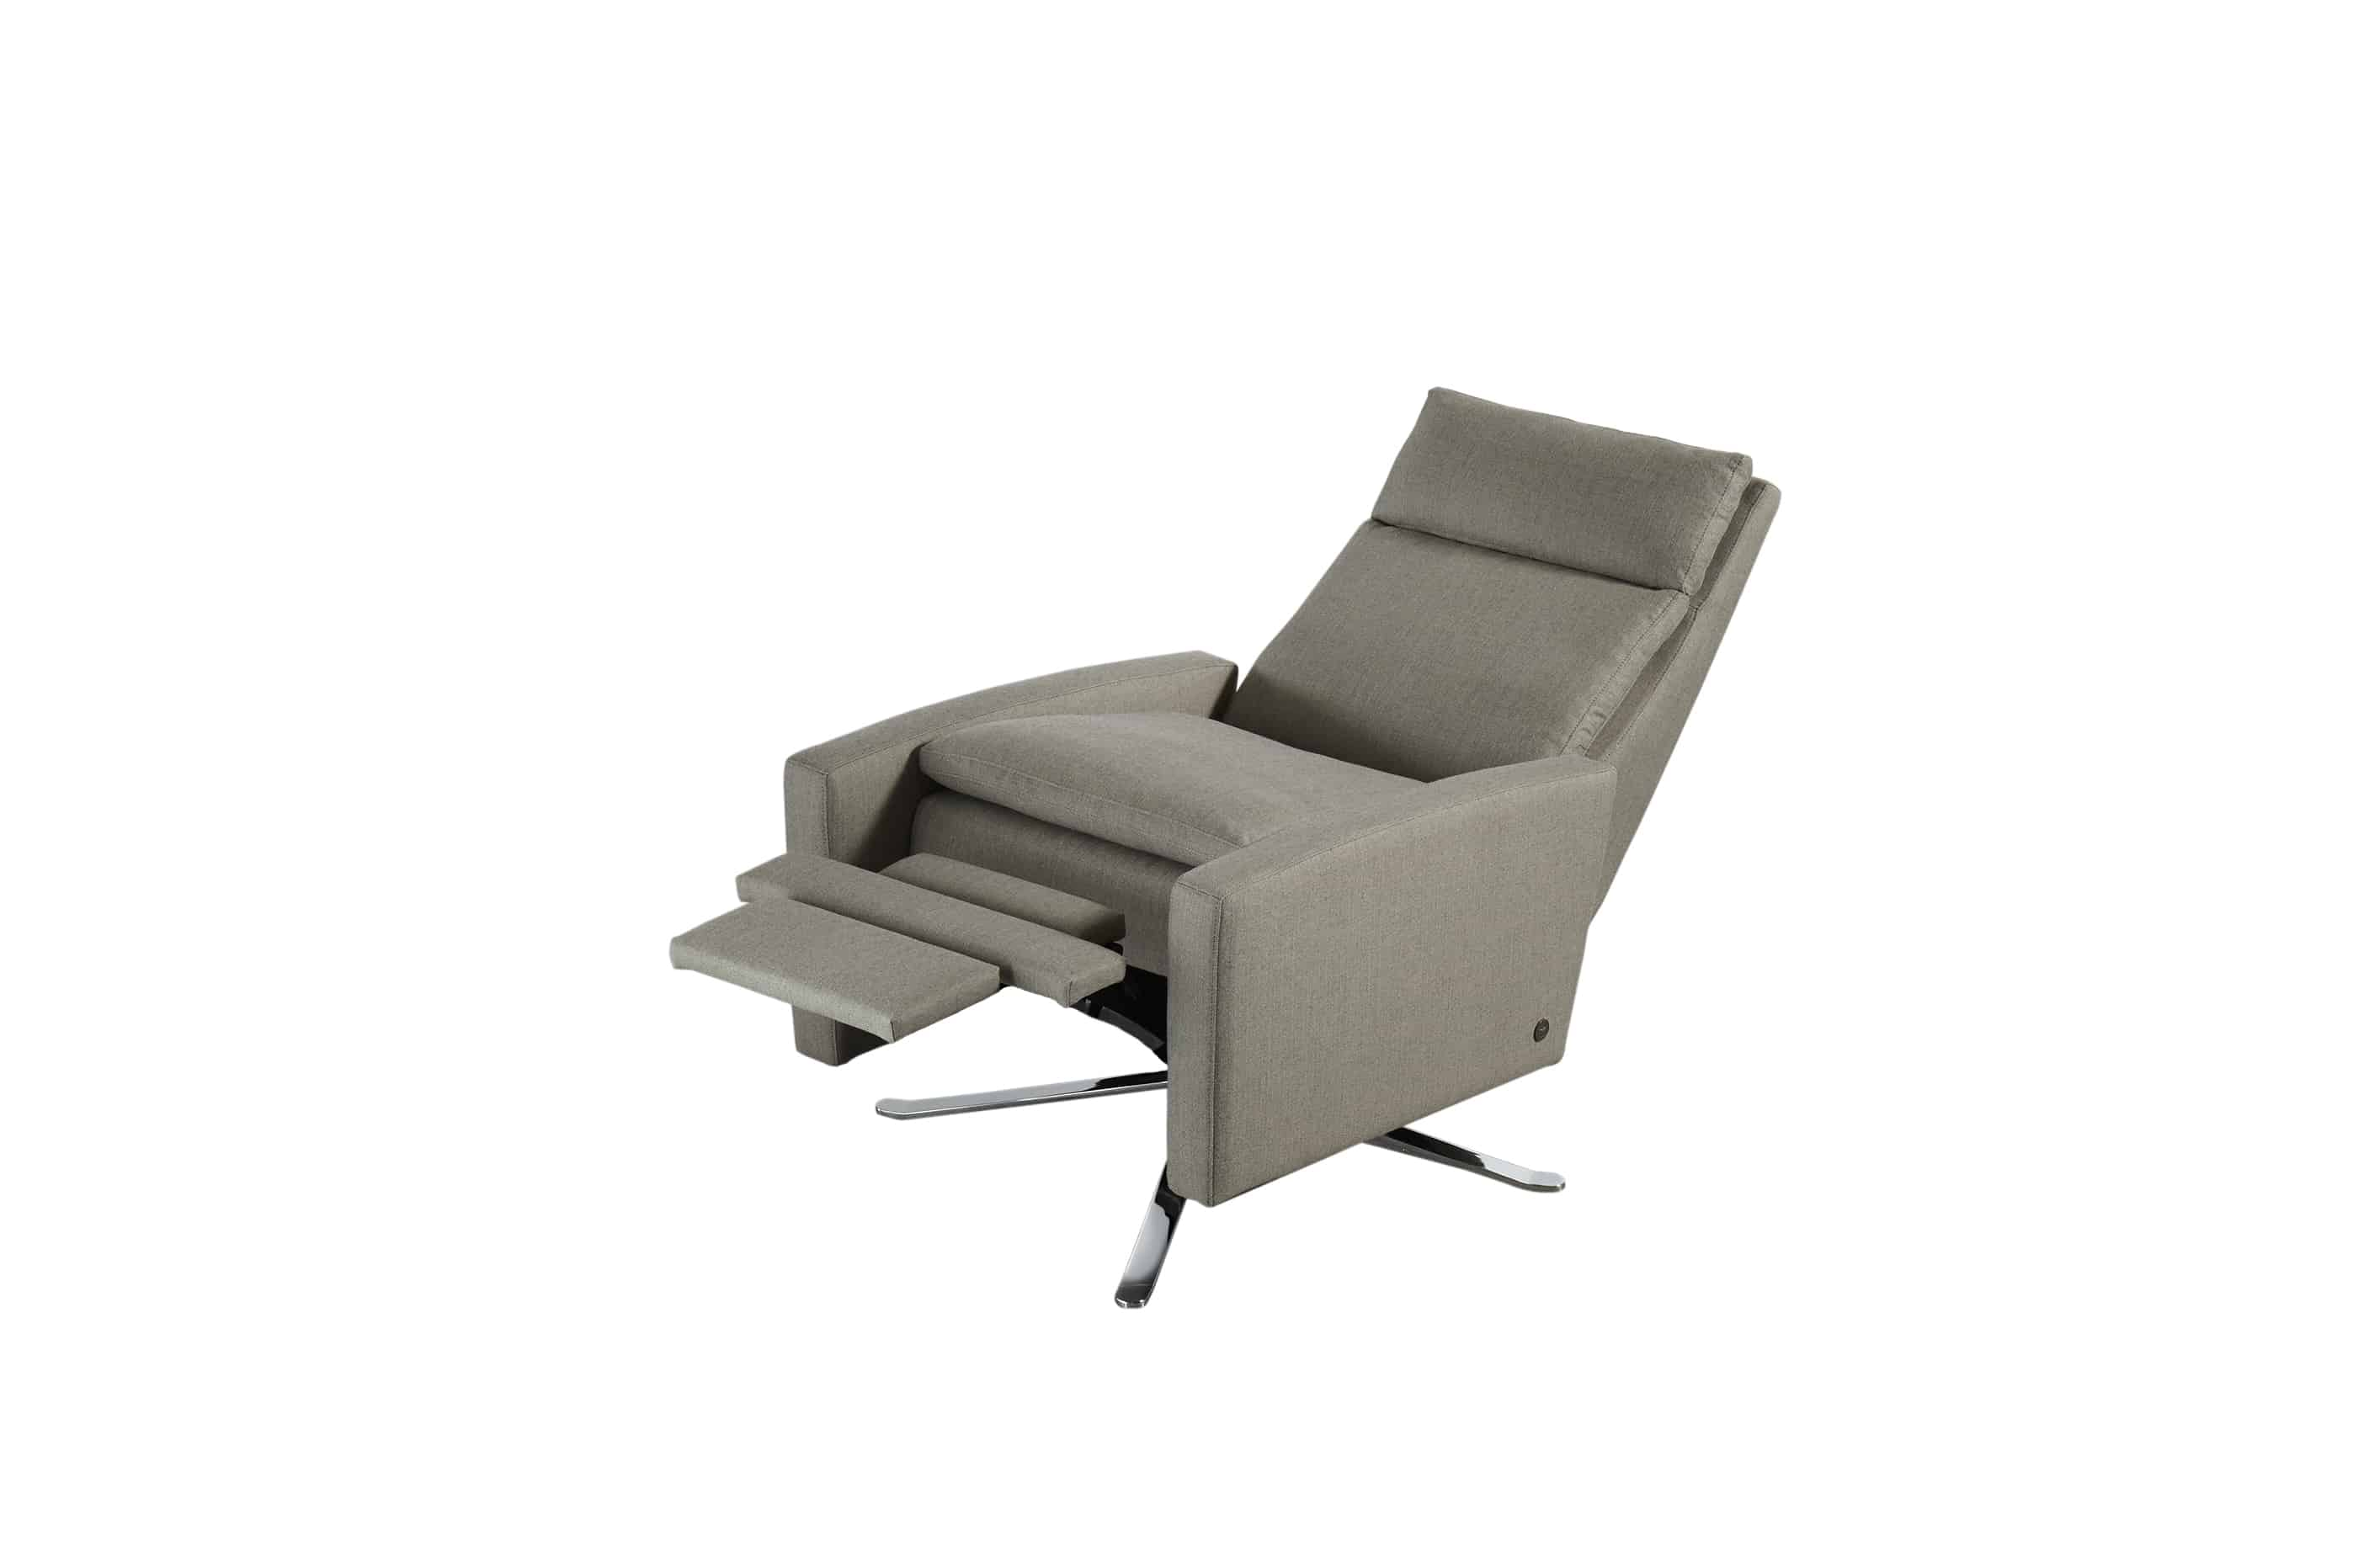 swivel chair inventor fishing full accessory kit simon re invented recliner bedroom and more san carlos